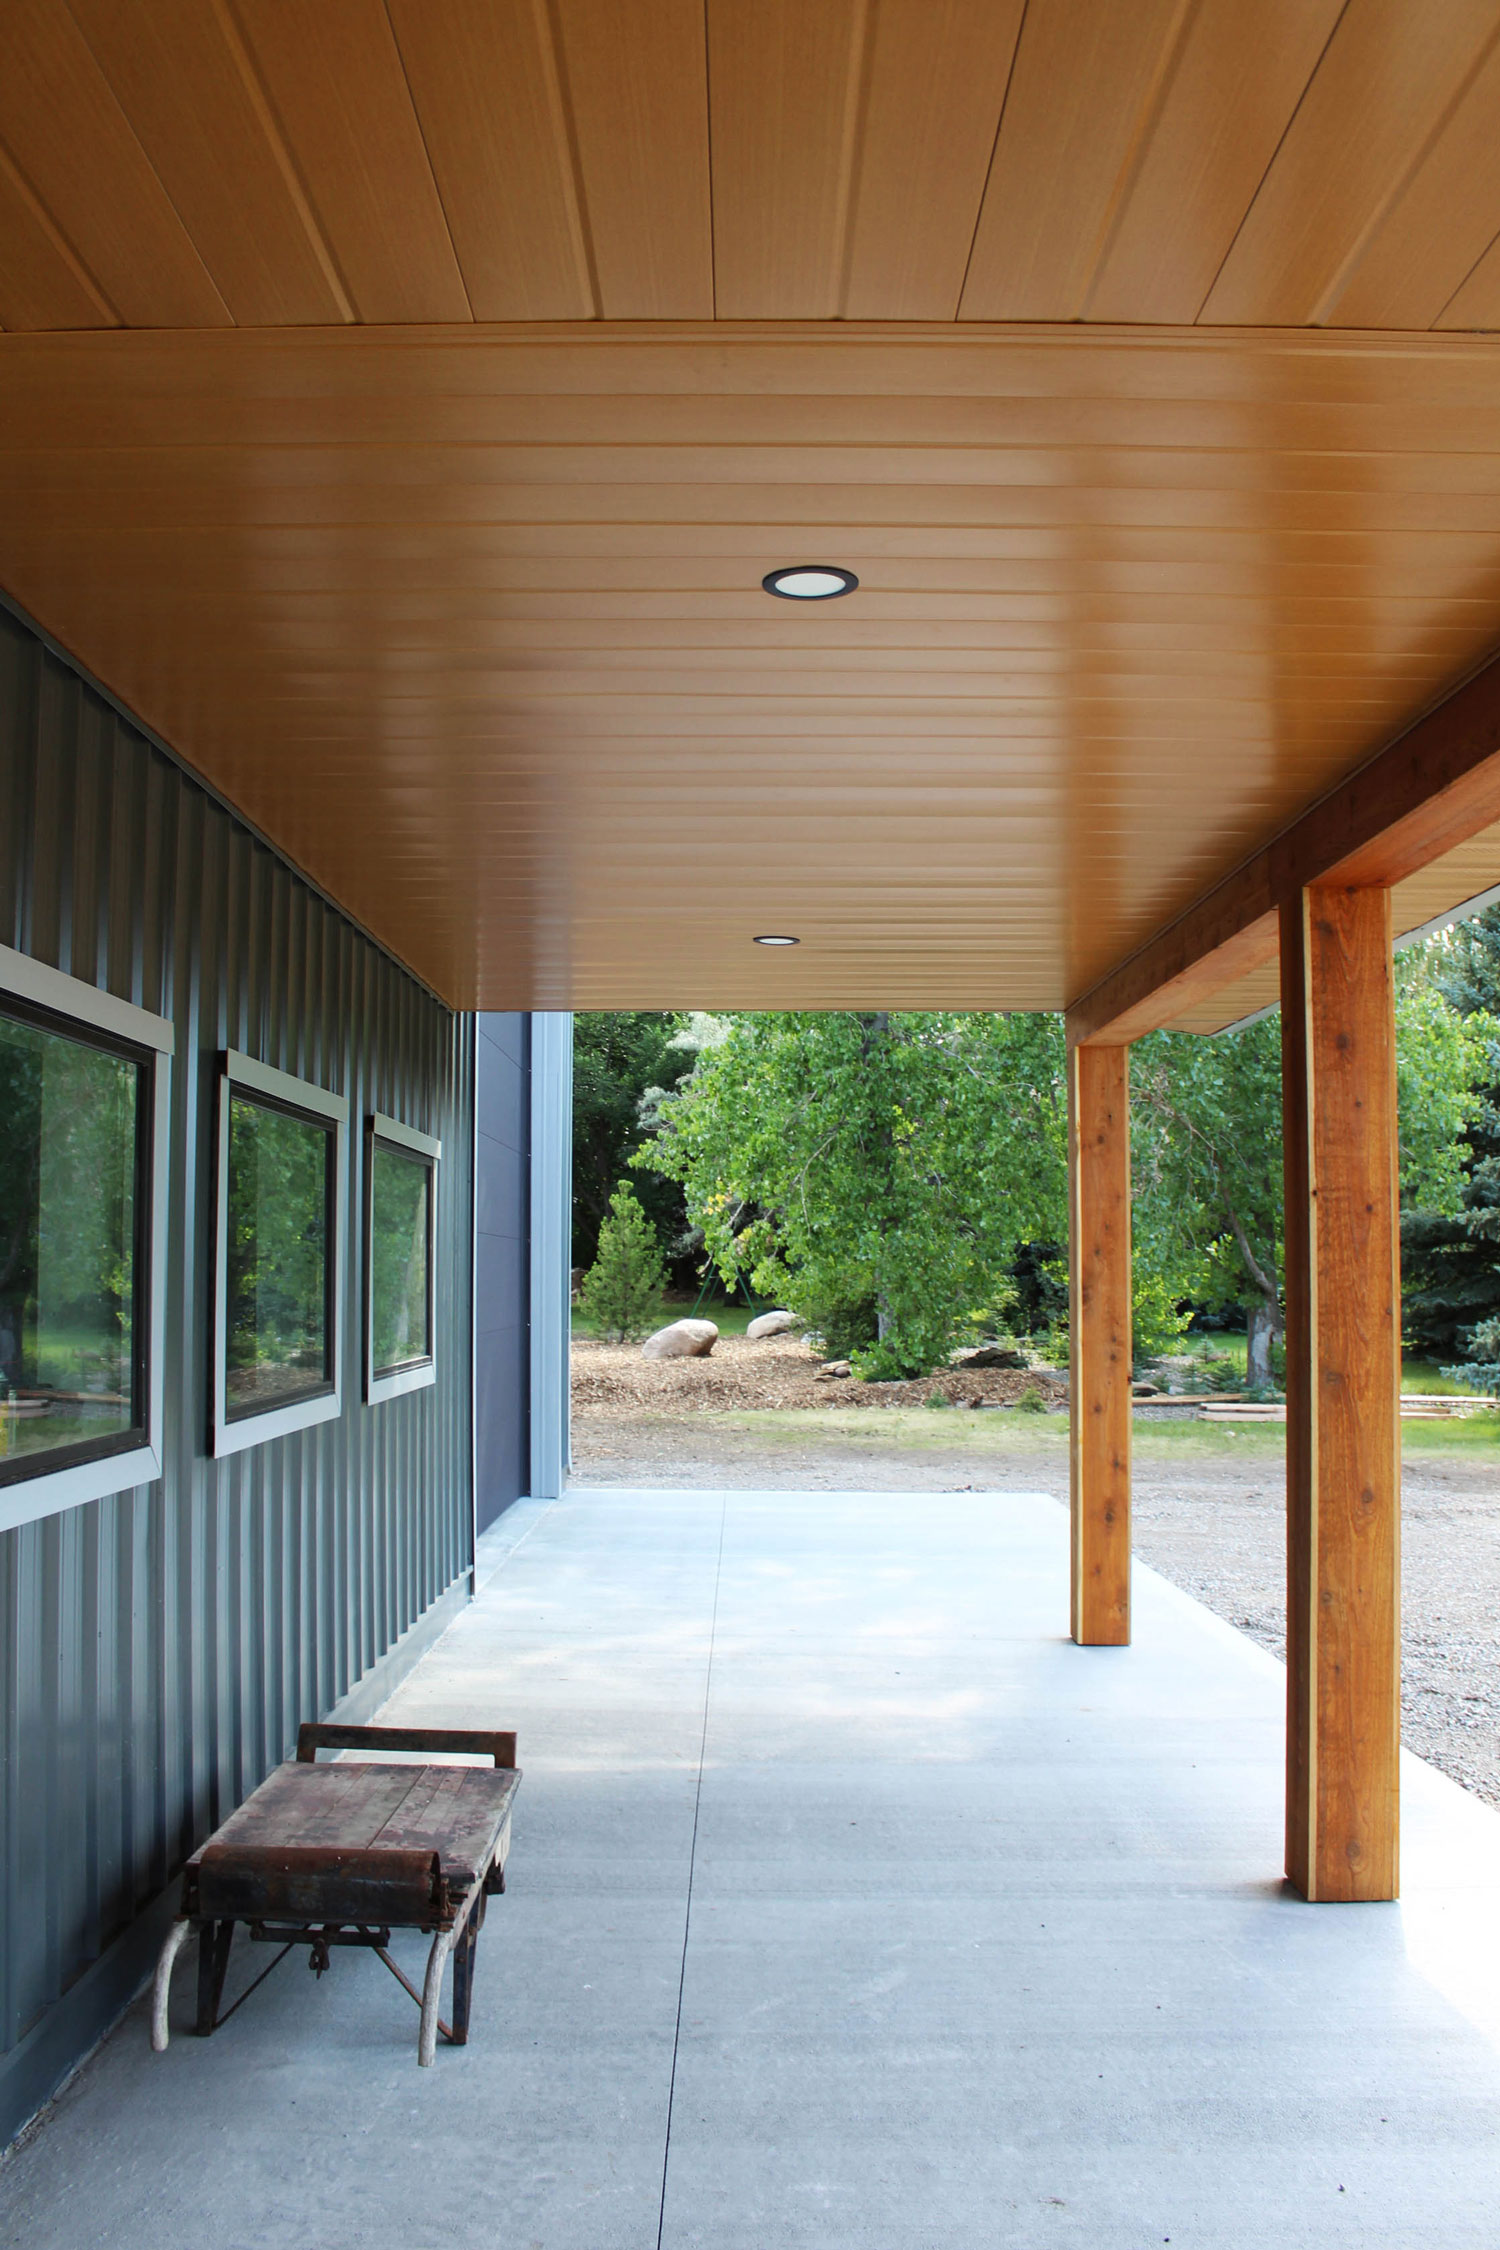 Gunmetal grey siding and Vented Soffit and non-vented soffit in Autumn Woodgrain on a residential work shop